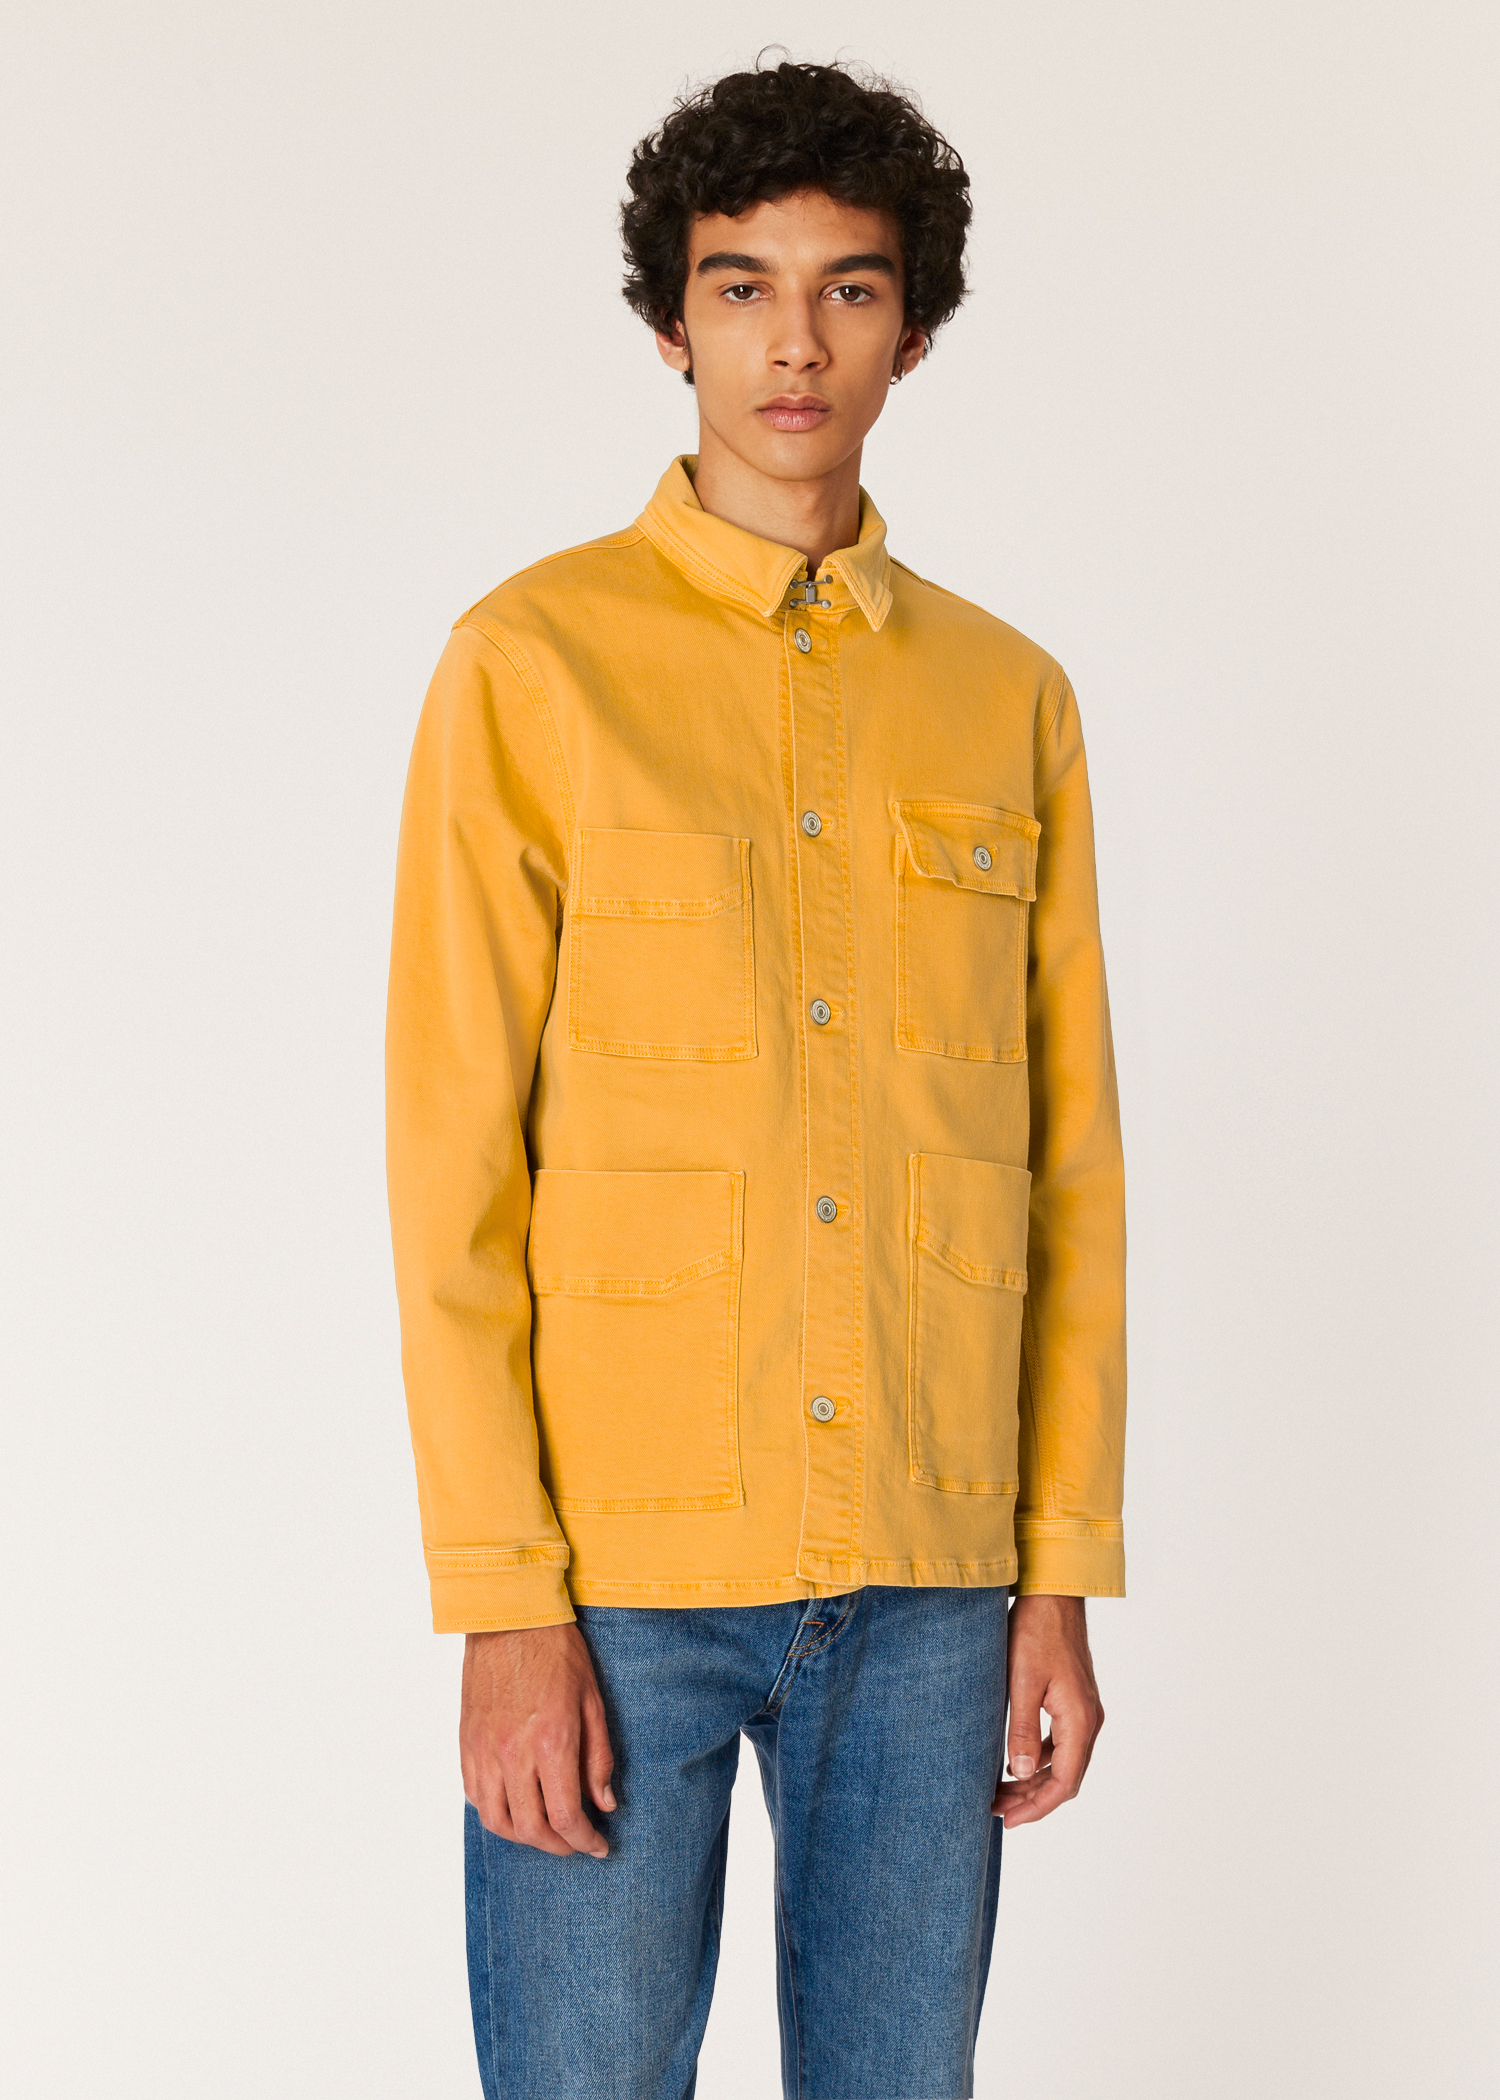 d64a1247f Model front close up - Men's Yellow Stretch-Cotton Denim Chore Jacket Paul  Smith